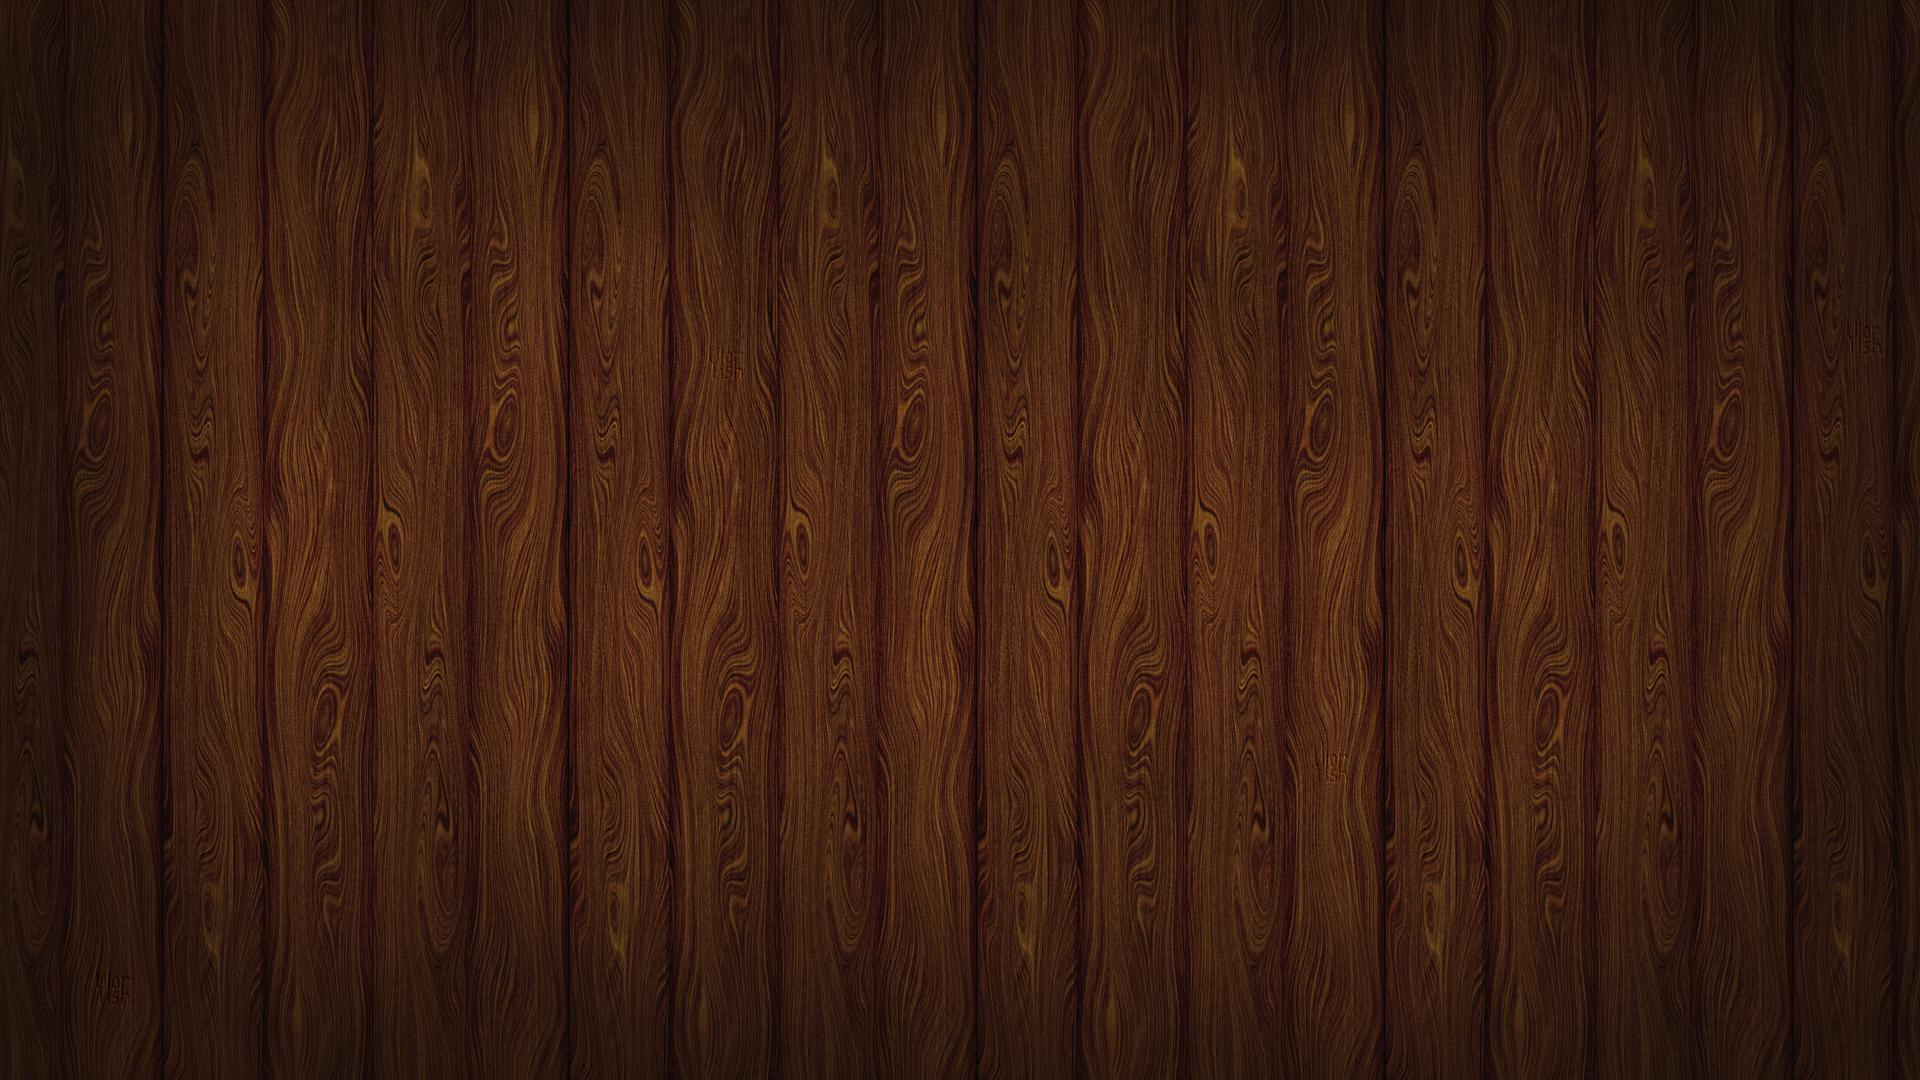 Wood wallpapers 1080p wallpaper cave for Wood wallpaper for walls